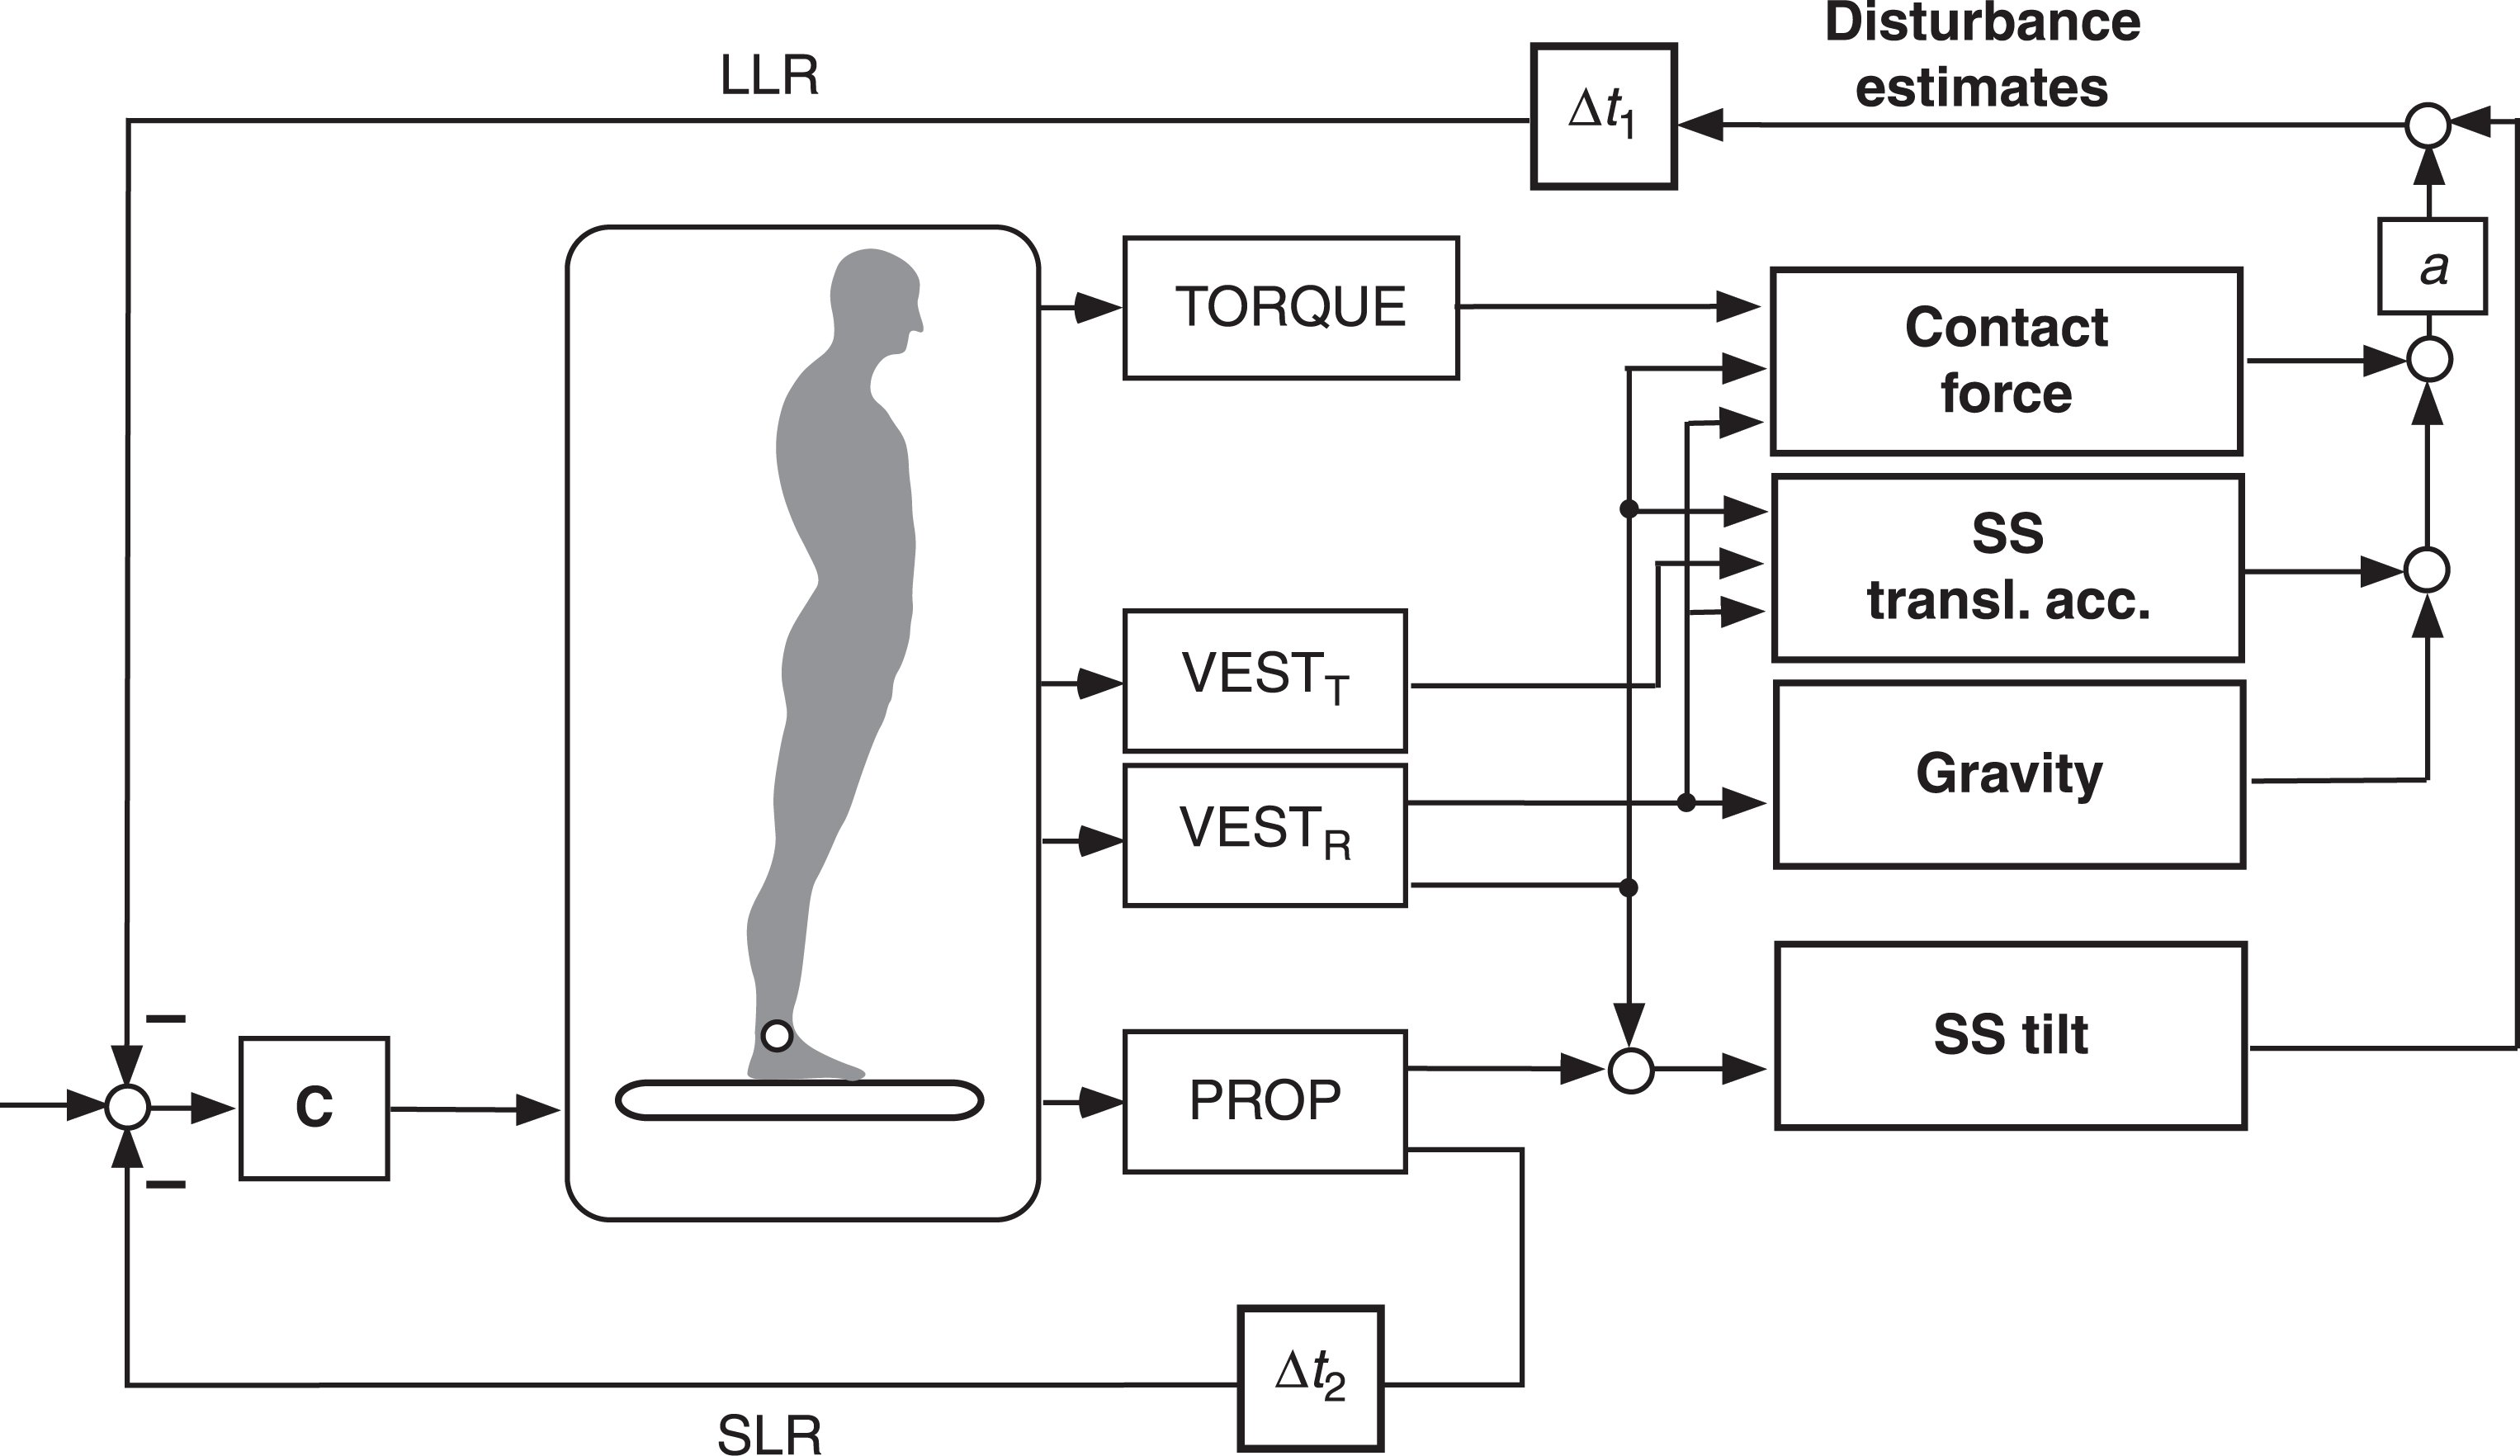 More detailed version of DEC model. It shows the network of sensor output signals that feed into the disturbance estimations (VESTT and VESTR, vestibular sensors of head translation and rotation, respectively). The lower feedback loop represents the servomechanism in terms of short-latency reflex, SLR (lumped time delay is in the order of Δ